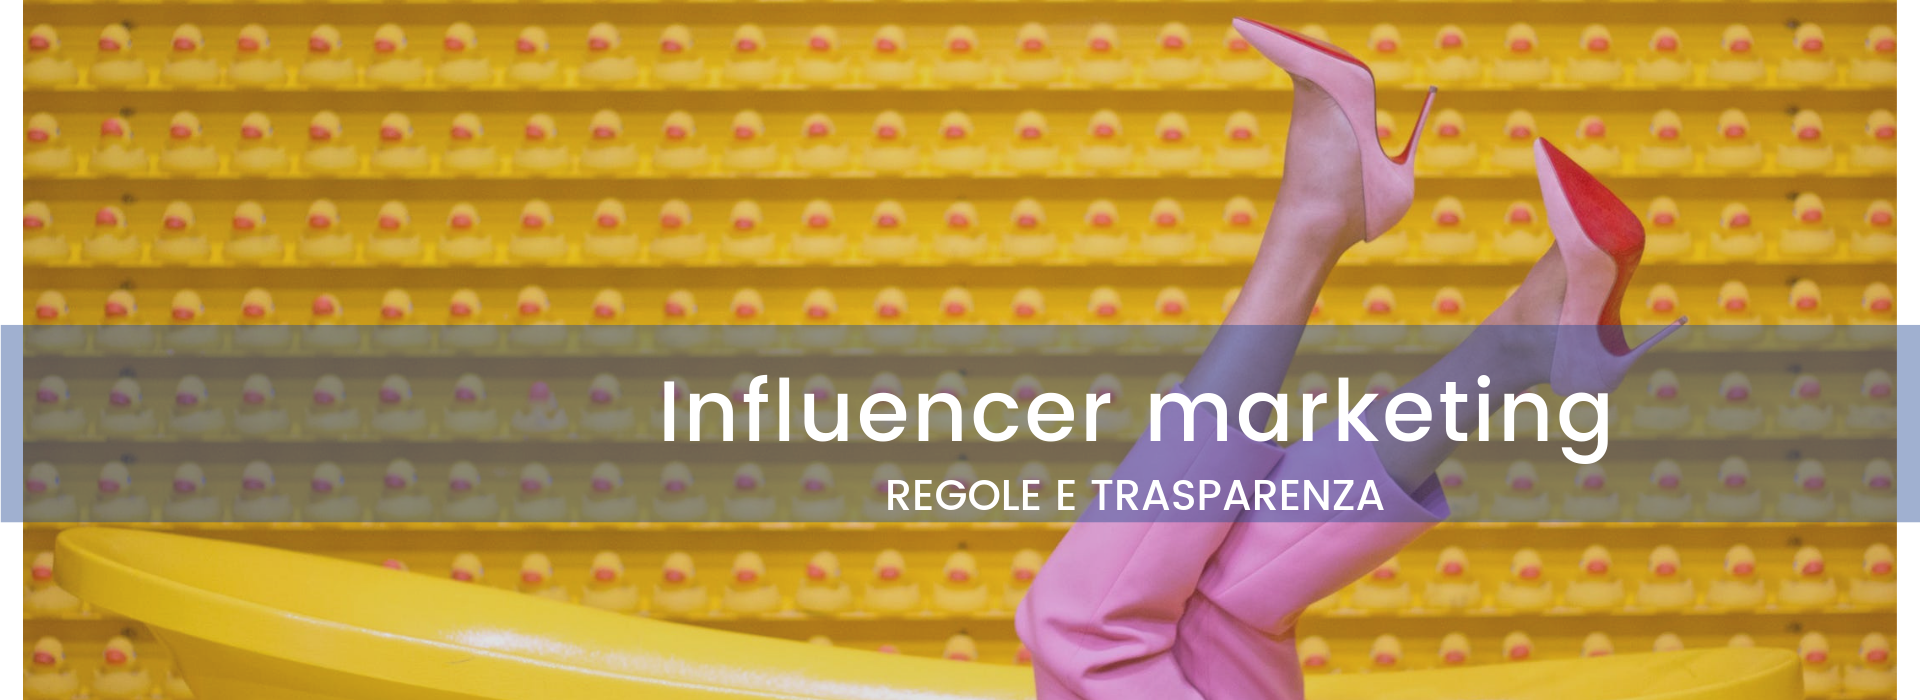 INFLUENCER MARKETING TRASPARENZA